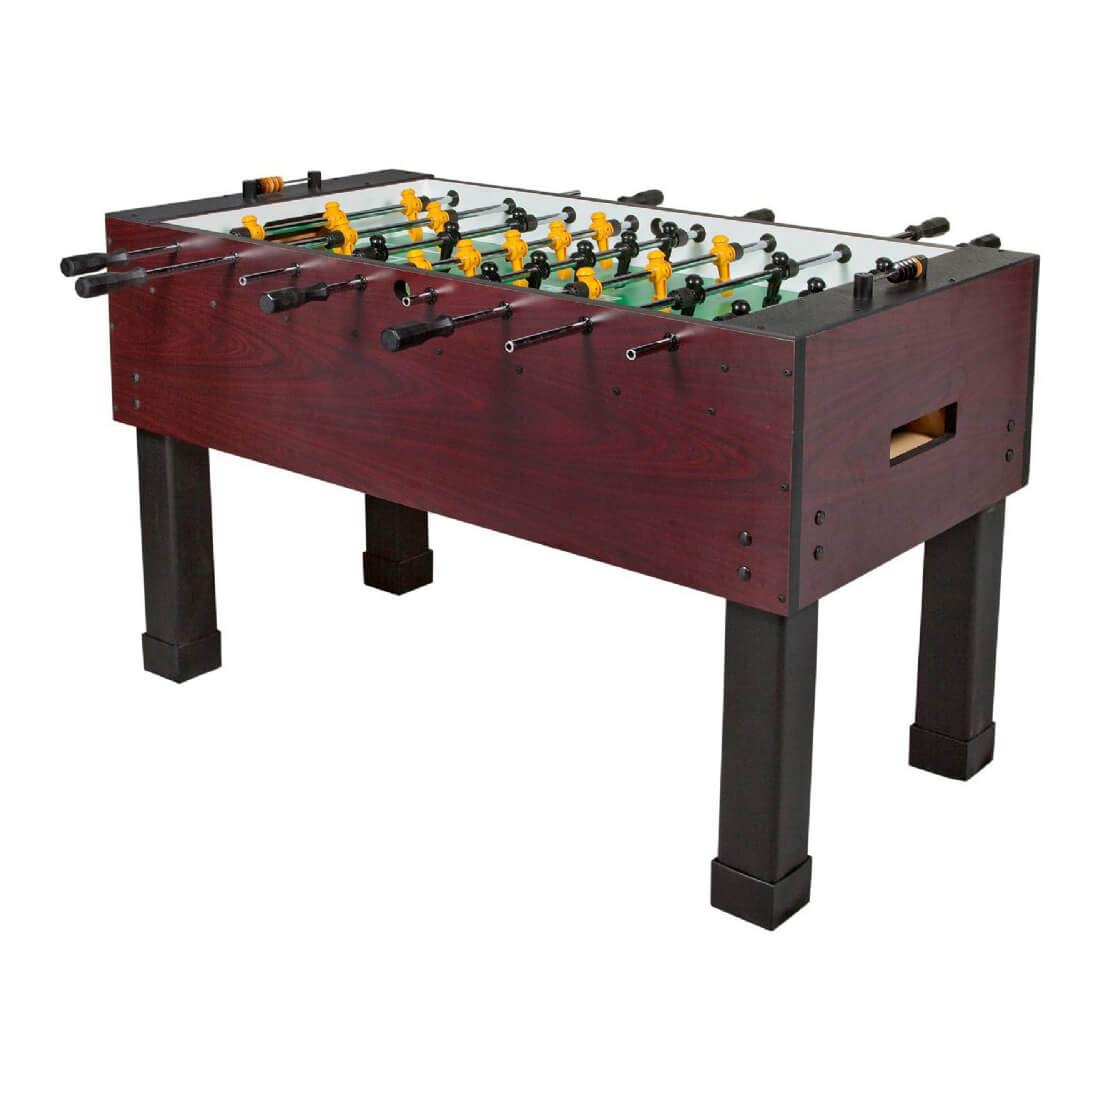 Awe Inspiring Tornado Sport Foosball Table Download Free Architecture Designs Scobabritishbridgeorg